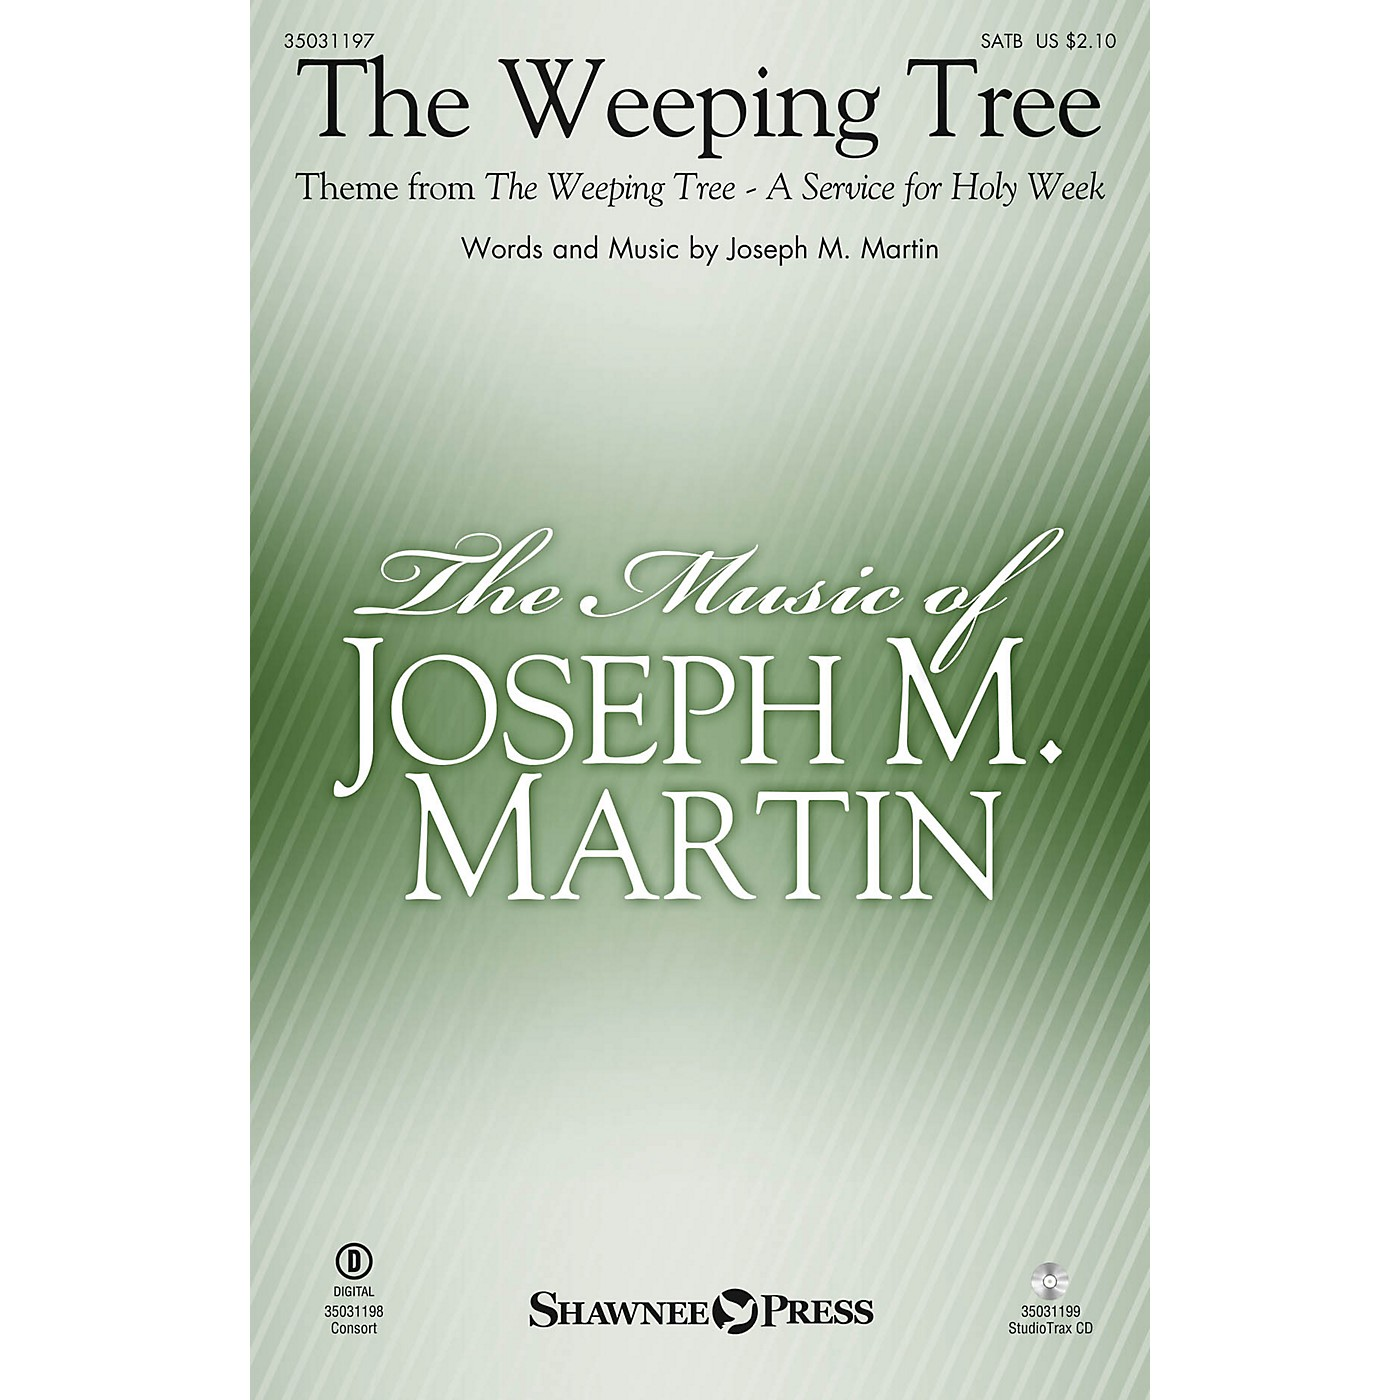 Shawnee Press The Weeping Tree (Theme from The Weeping Tree) Studiotrax CD Composed by Joseph M. Martin thumbnail